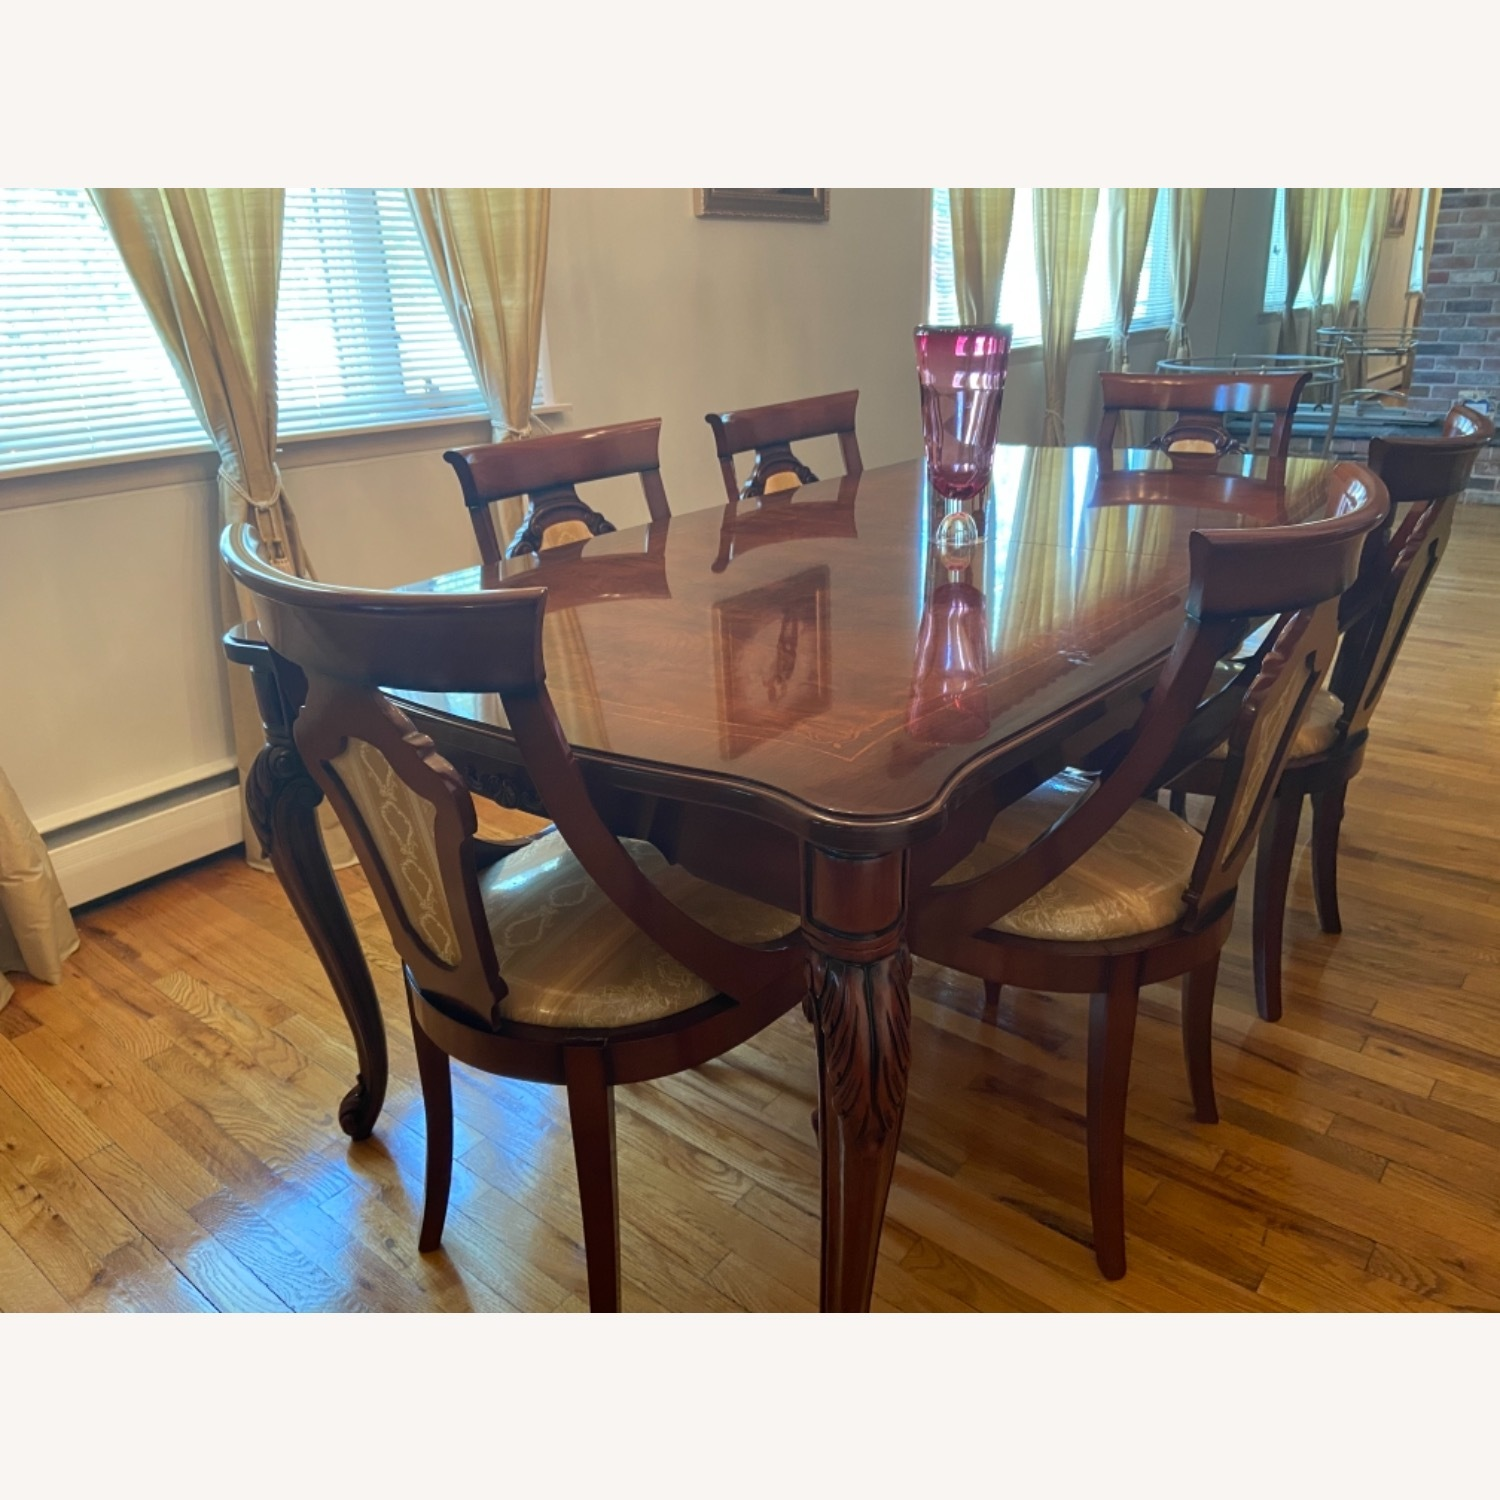 ItalModern Dining Room Table - image-0